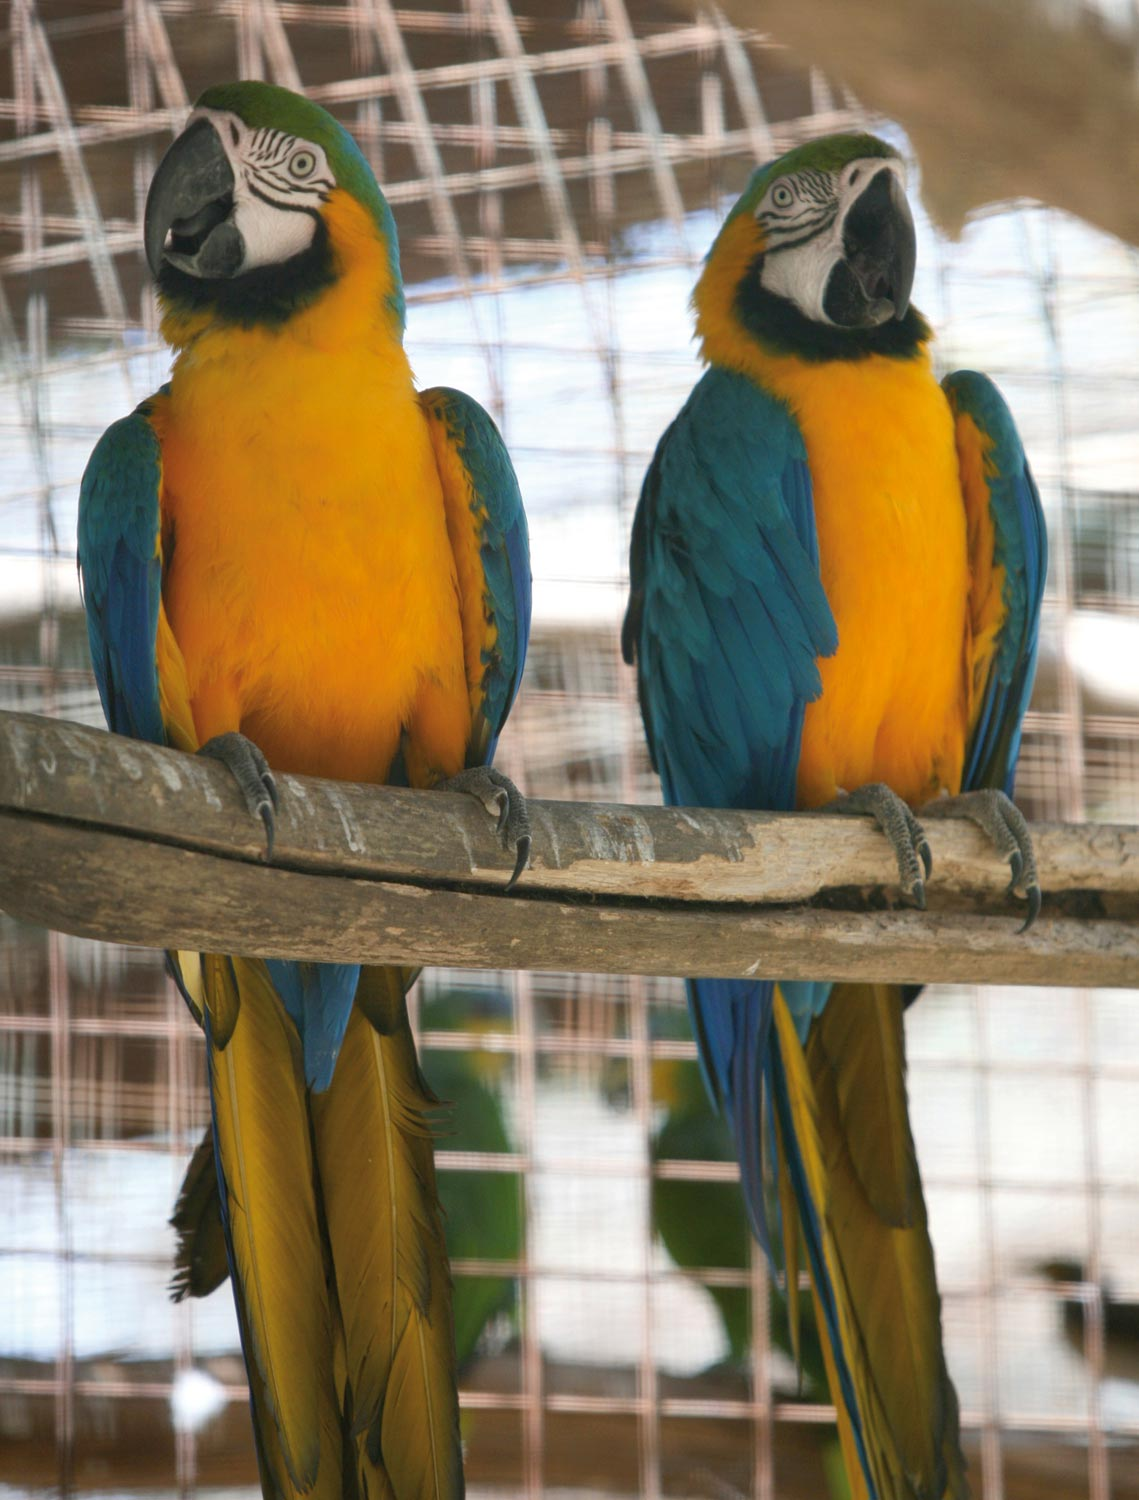 A pair of macaws put on a colourful display. Photograph by Andrea De Silva